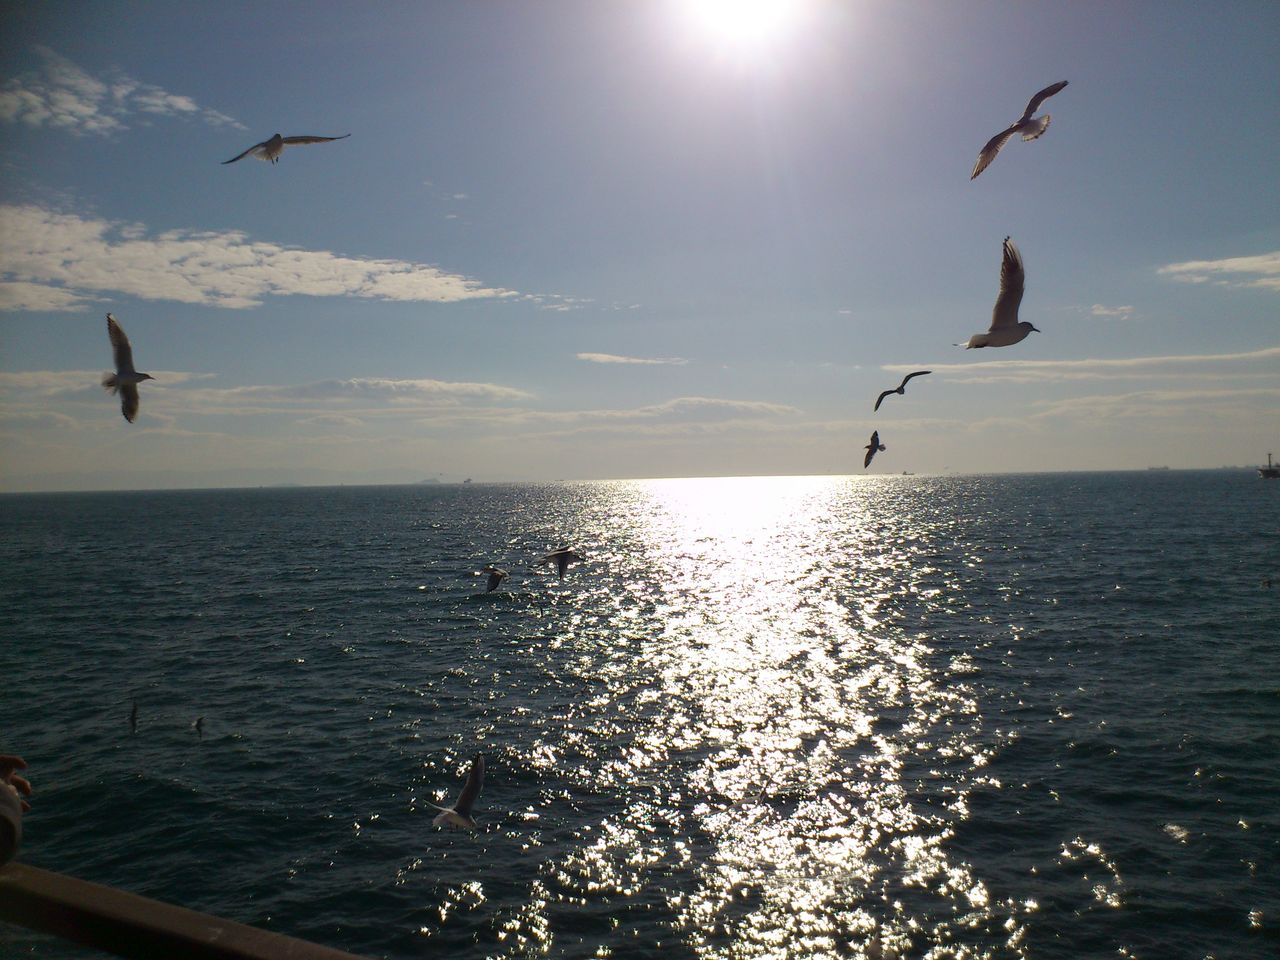 sea, flying, mid-air, bird, horizon over water, water, nature, sun, sky, sunlight, spread wings, scenics, animal themes, beauty in nature, tranquil scene, sunset, animals in the wild, outdoors, one animal, silhouette, tranquility, no people, animal wildlife, day